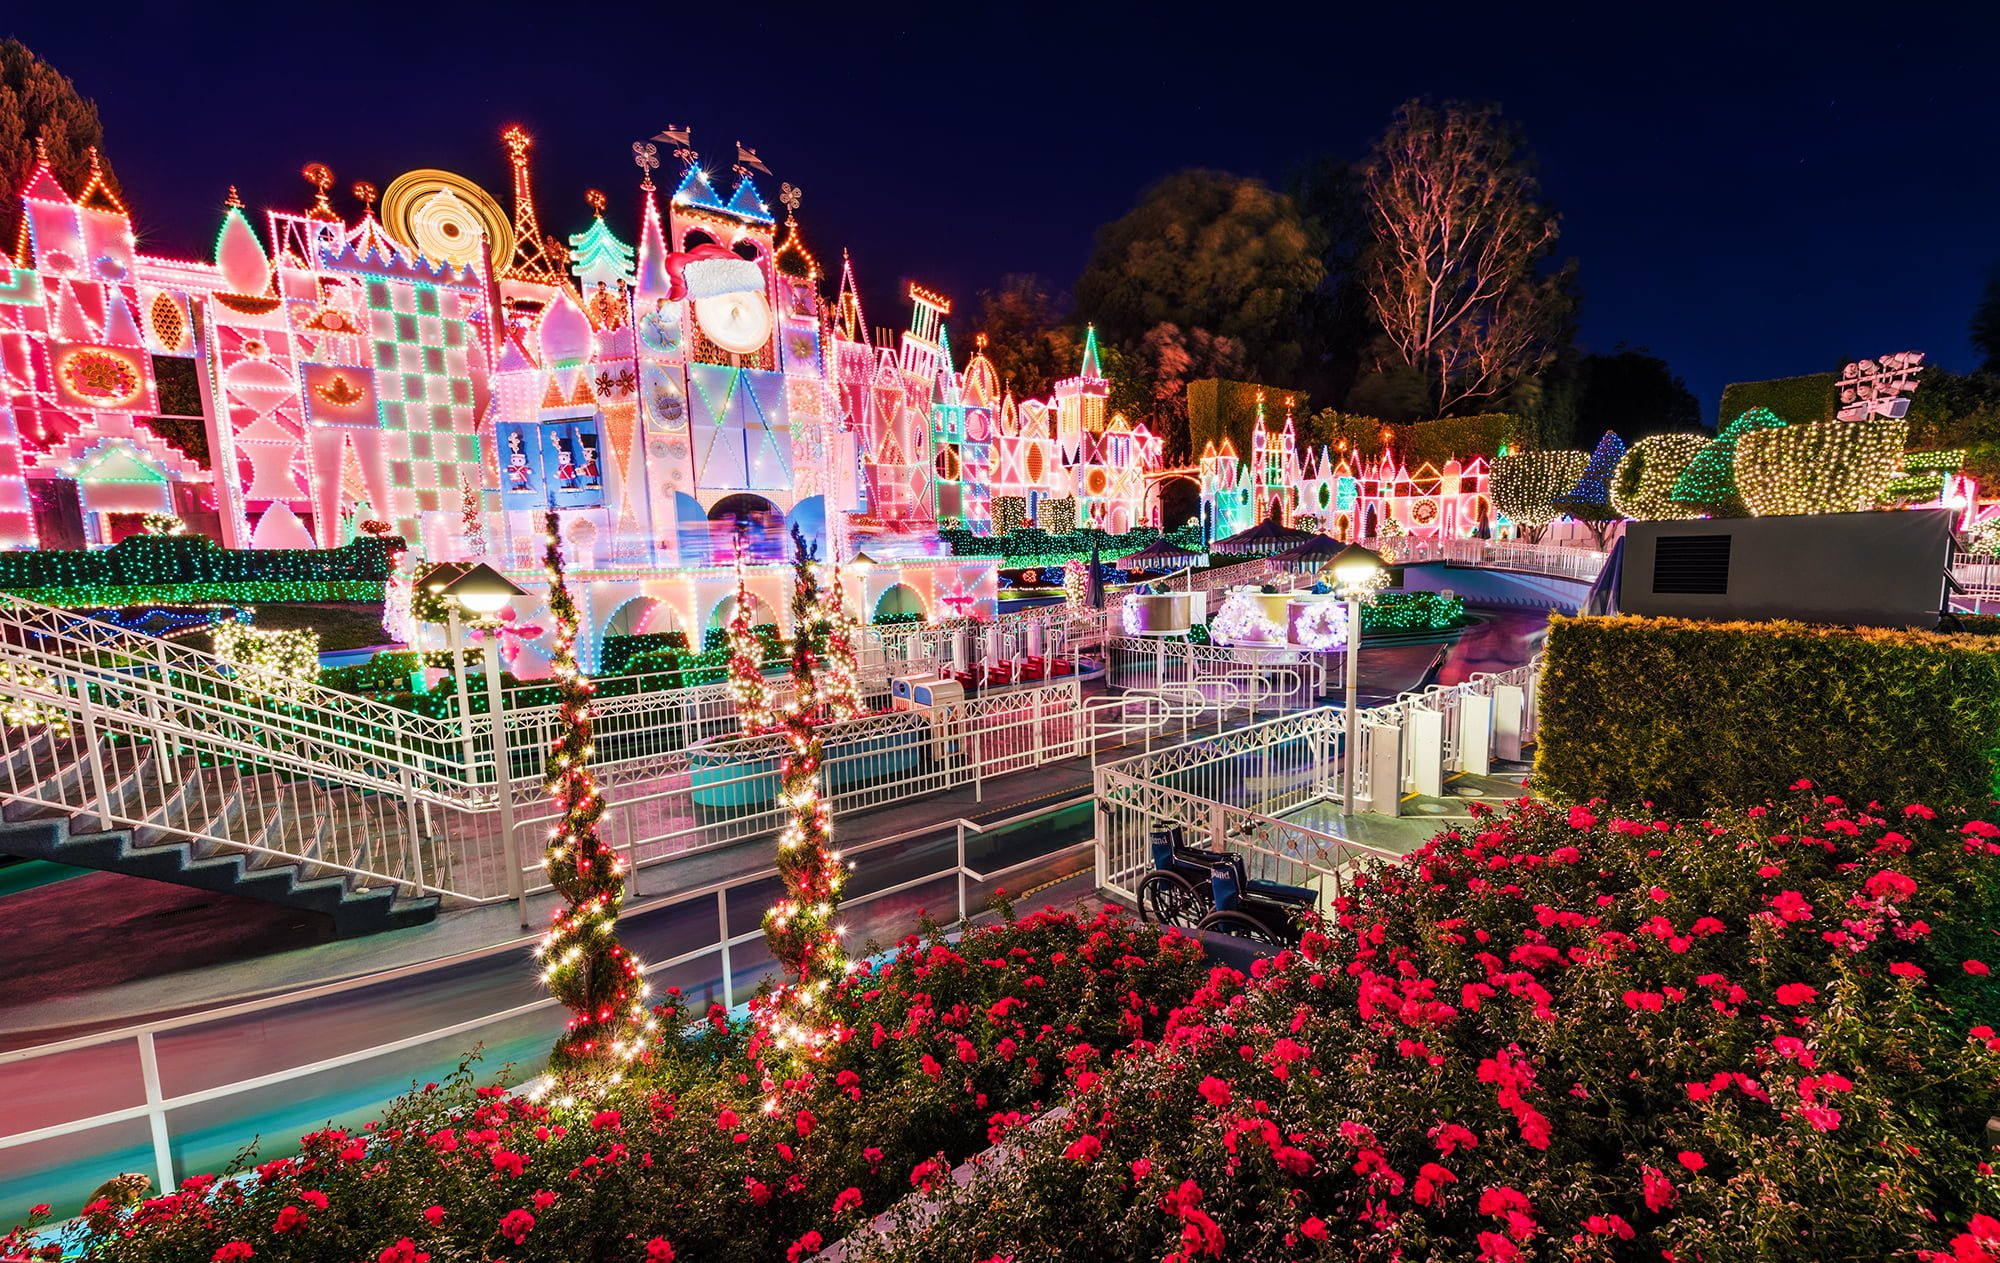 small world holiday exterior disneyland flowers copy